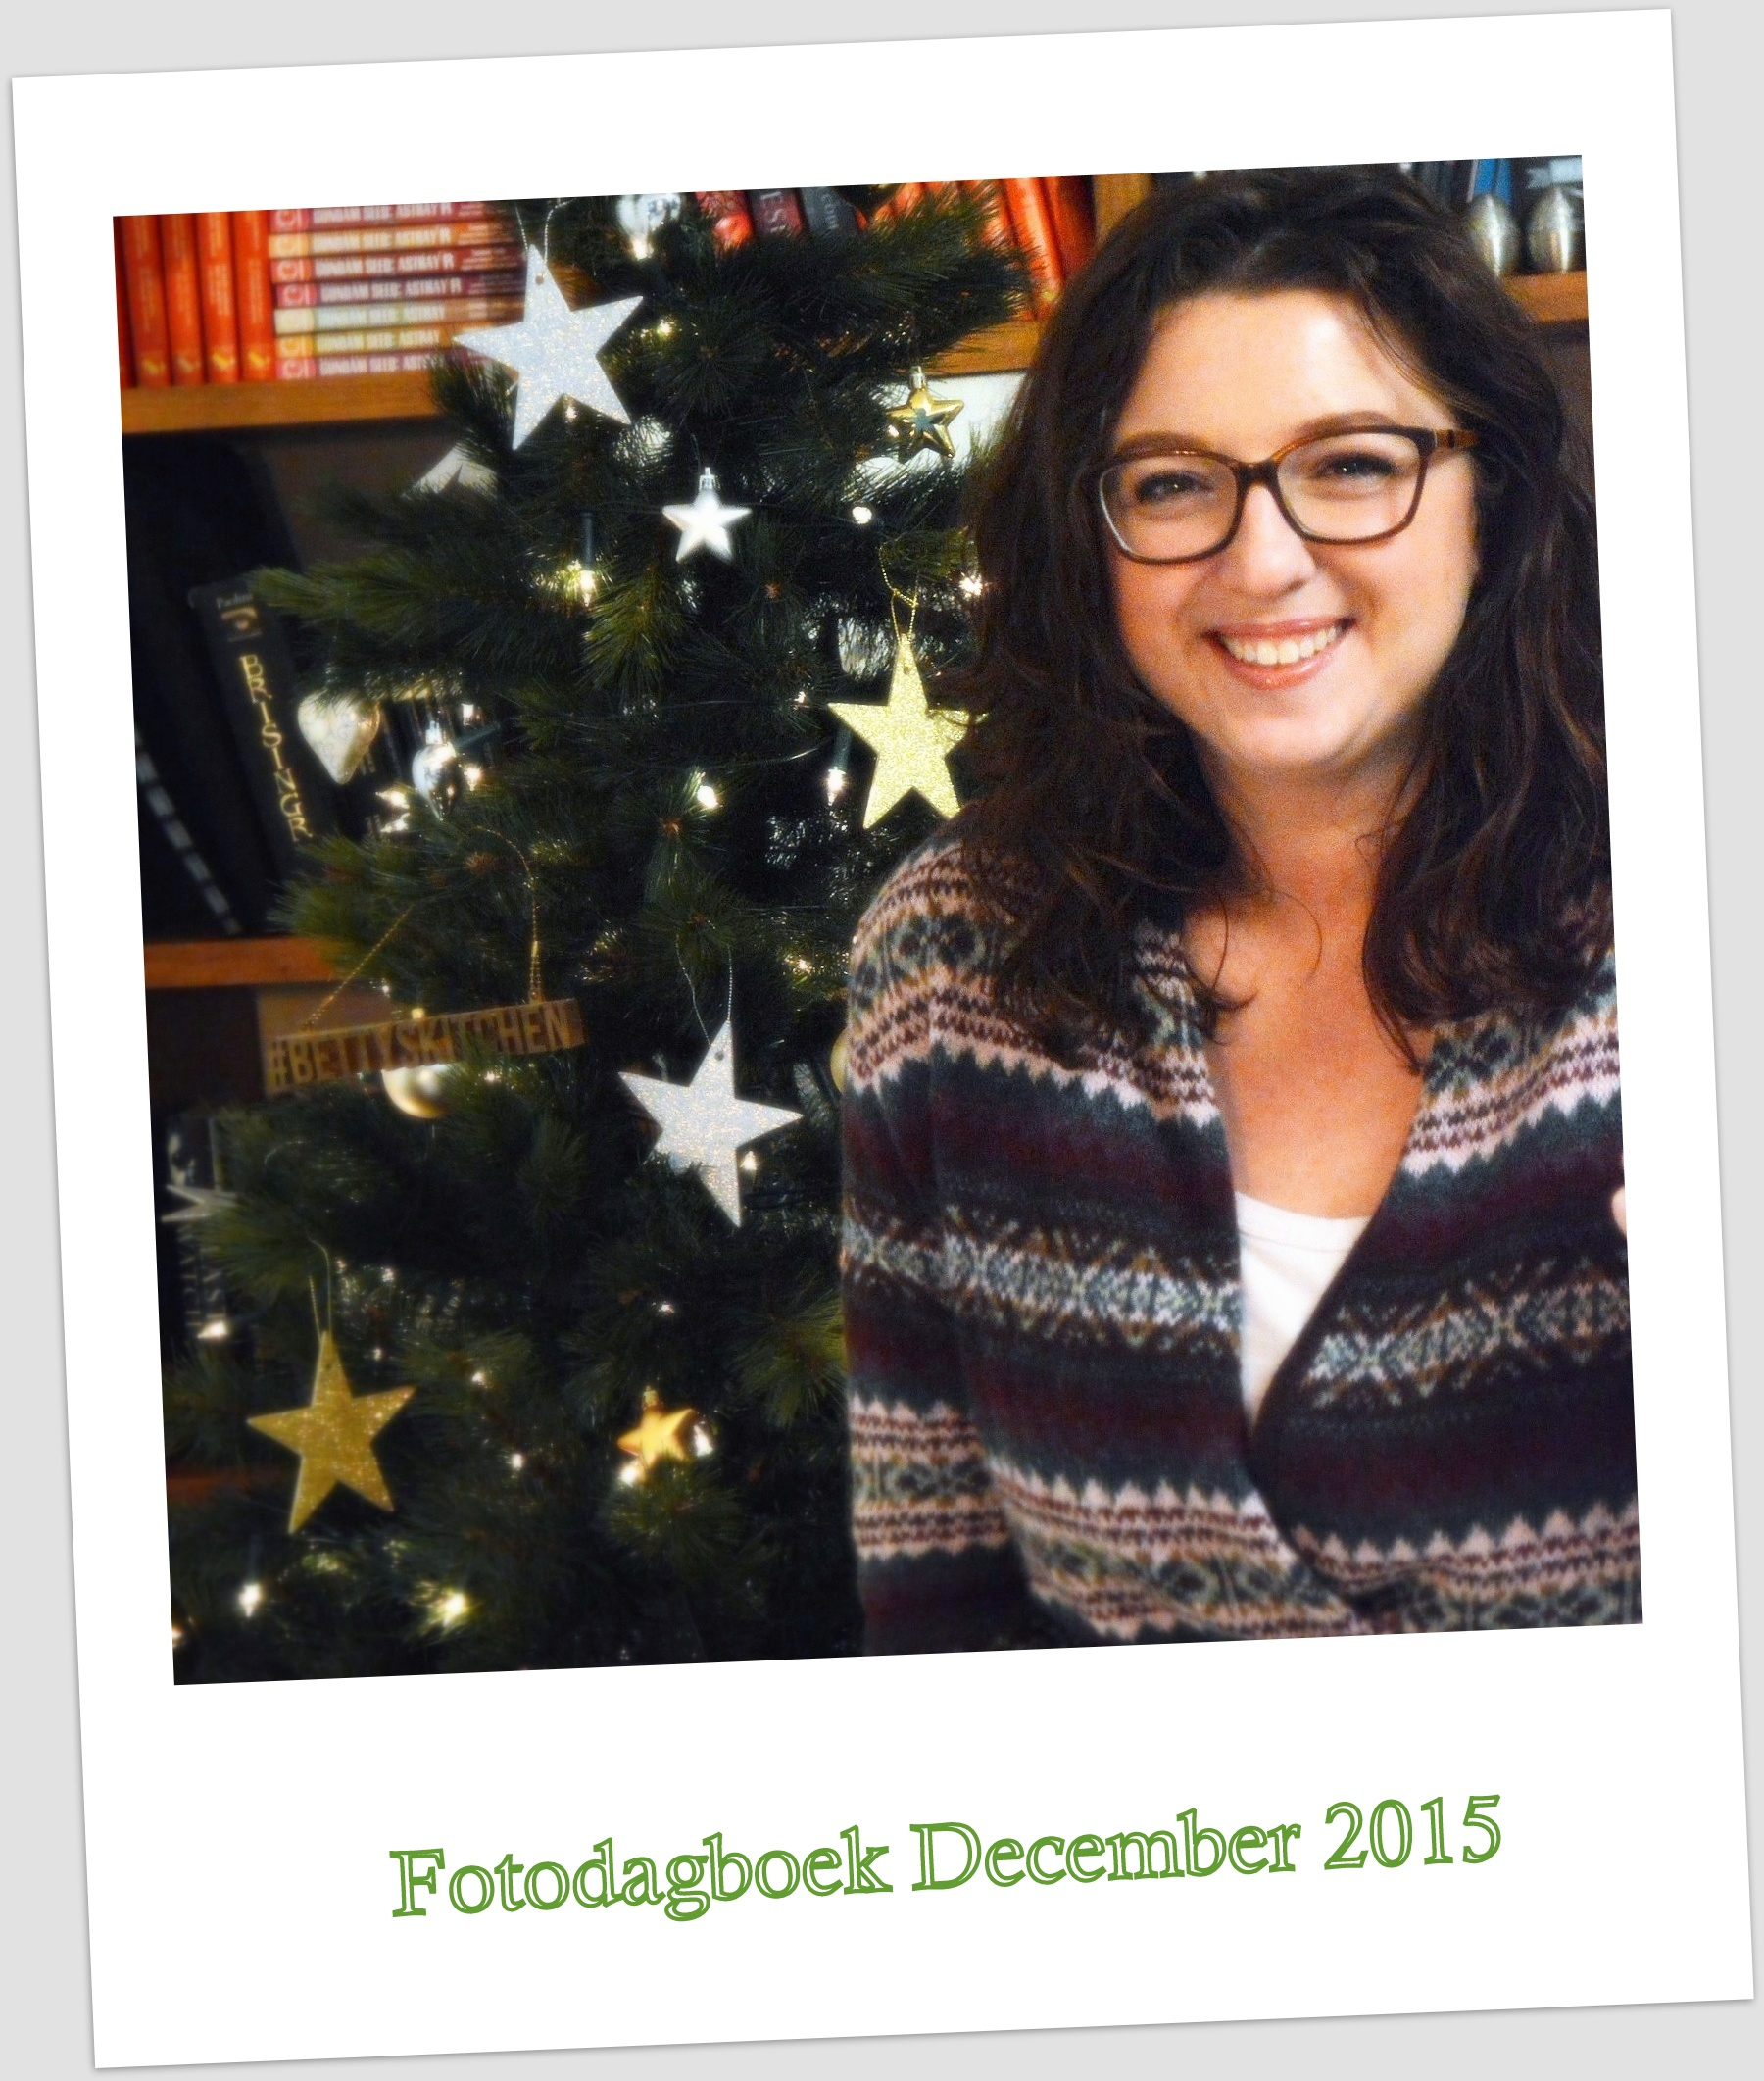 Fotodagboek December 2015